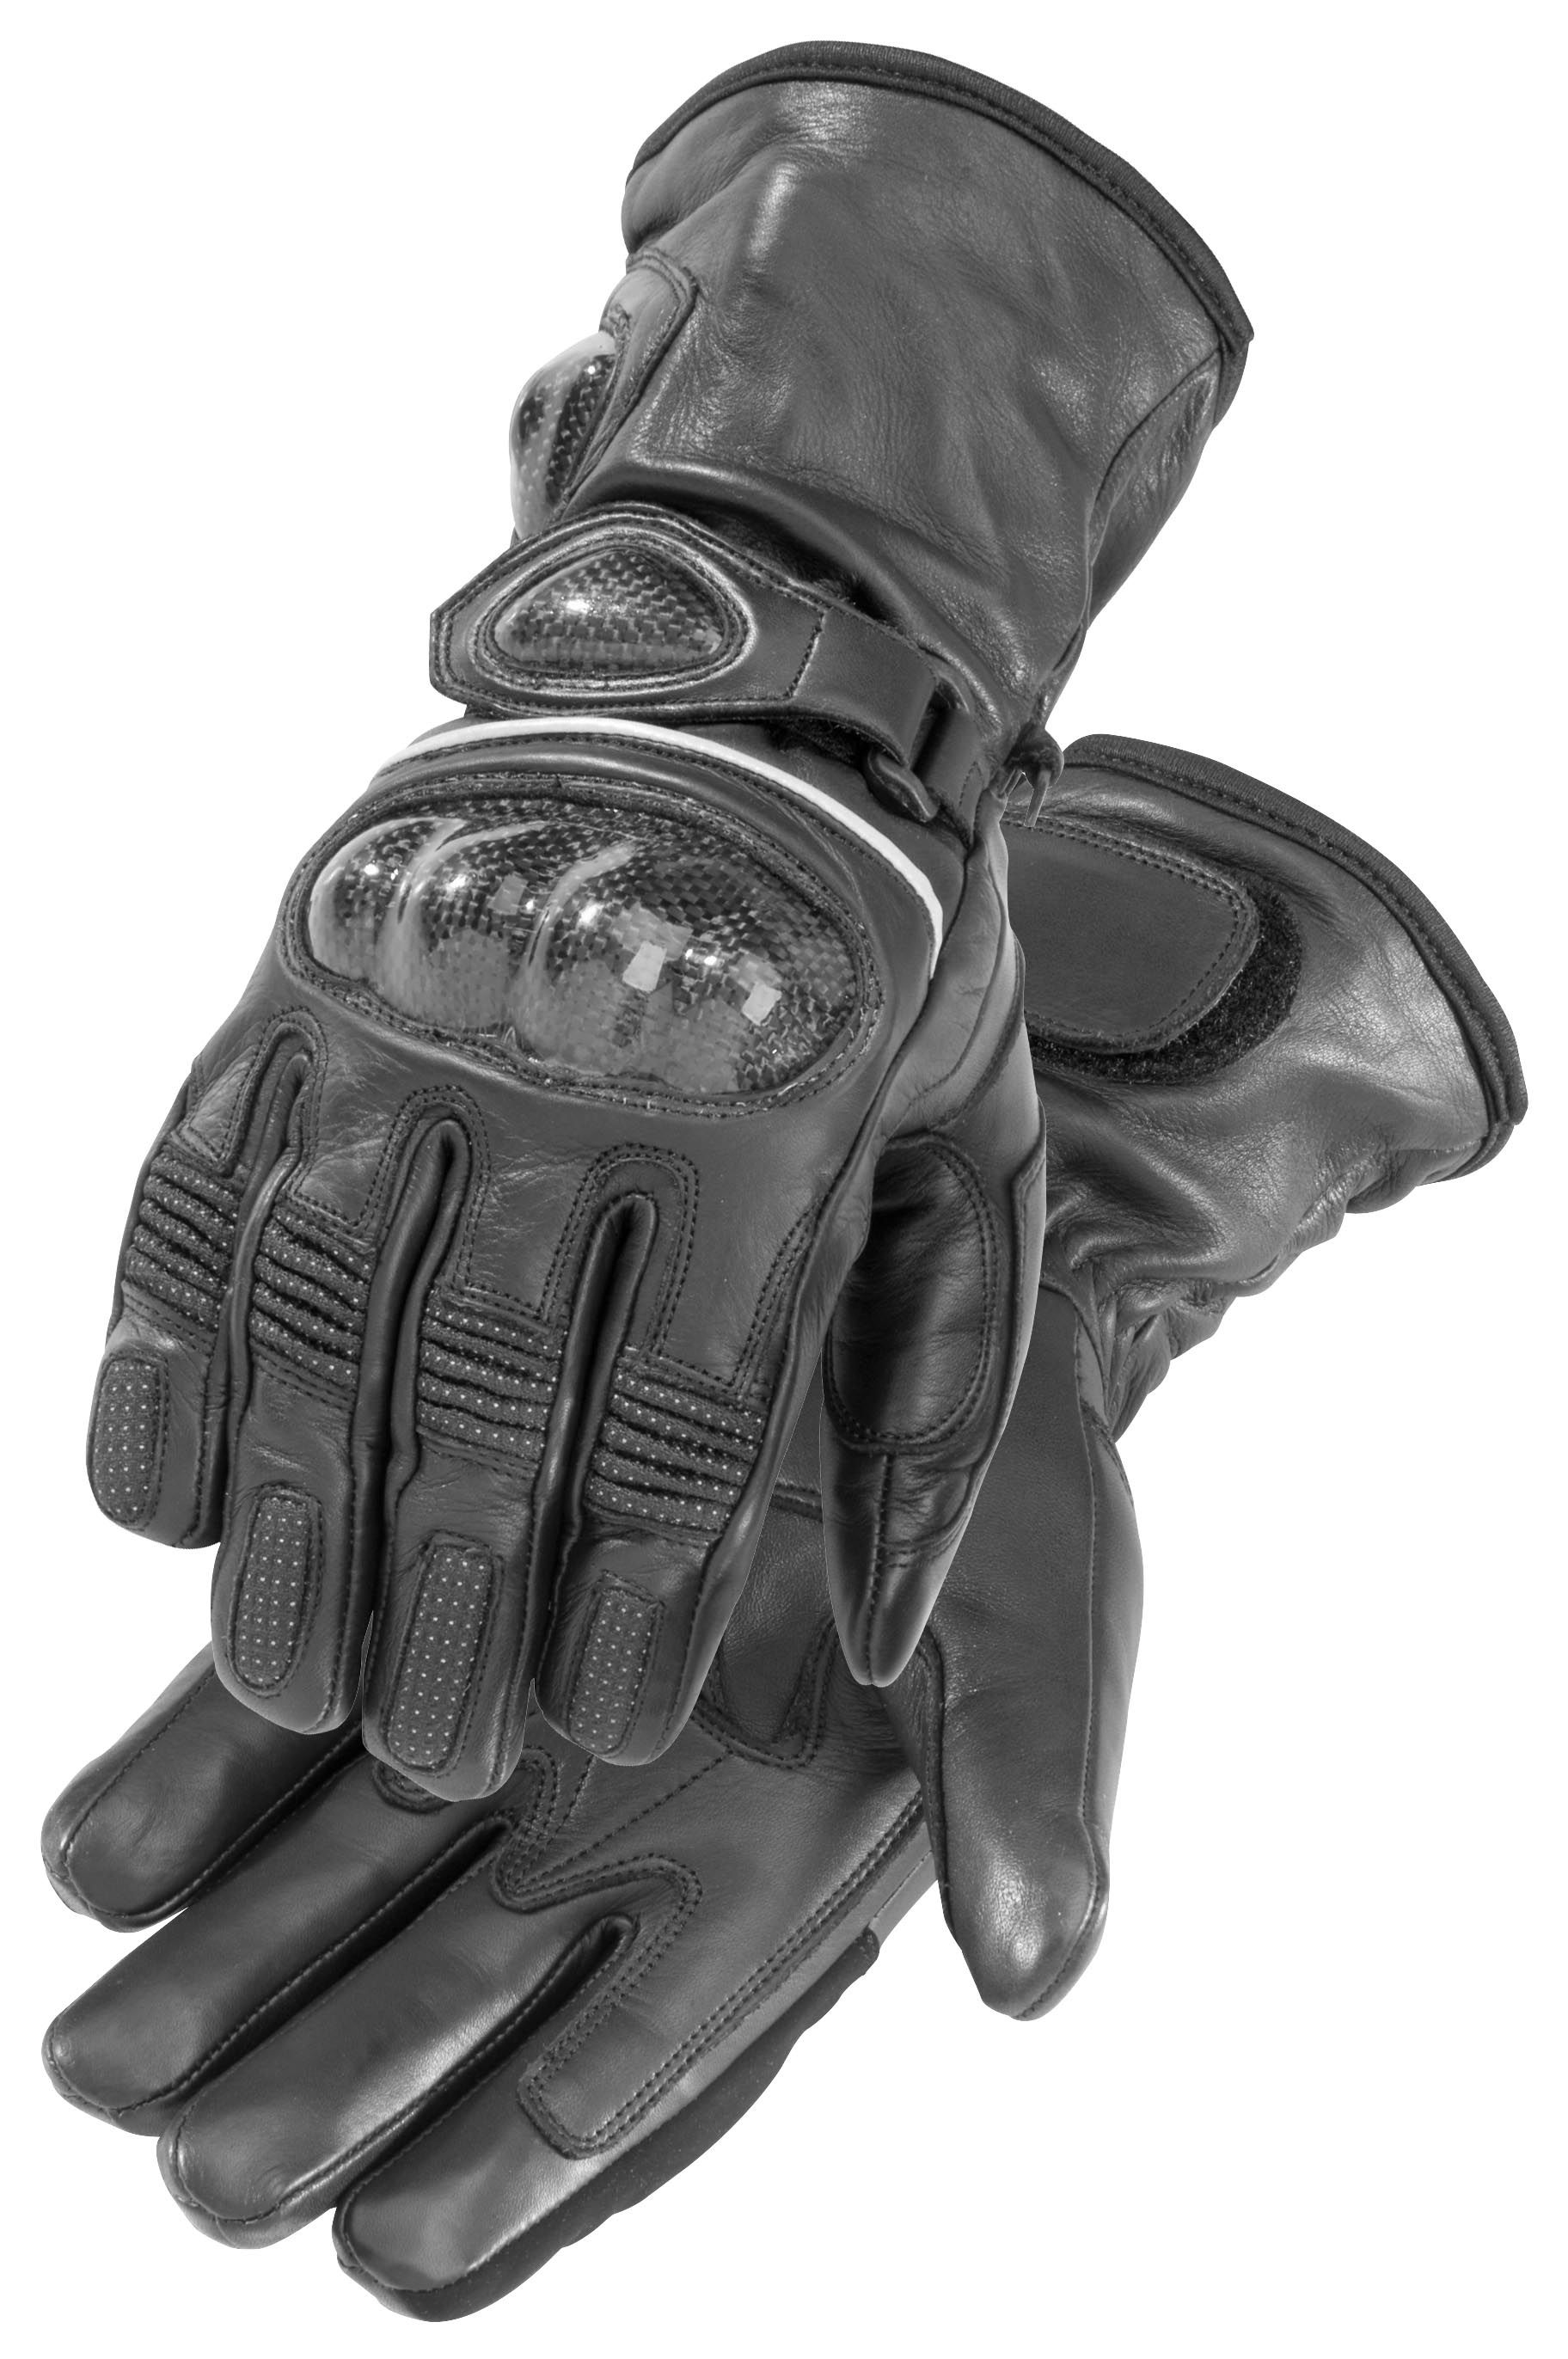 Motorcycle gloves heated battery - Motorcycle Gloves Heated Battery 20